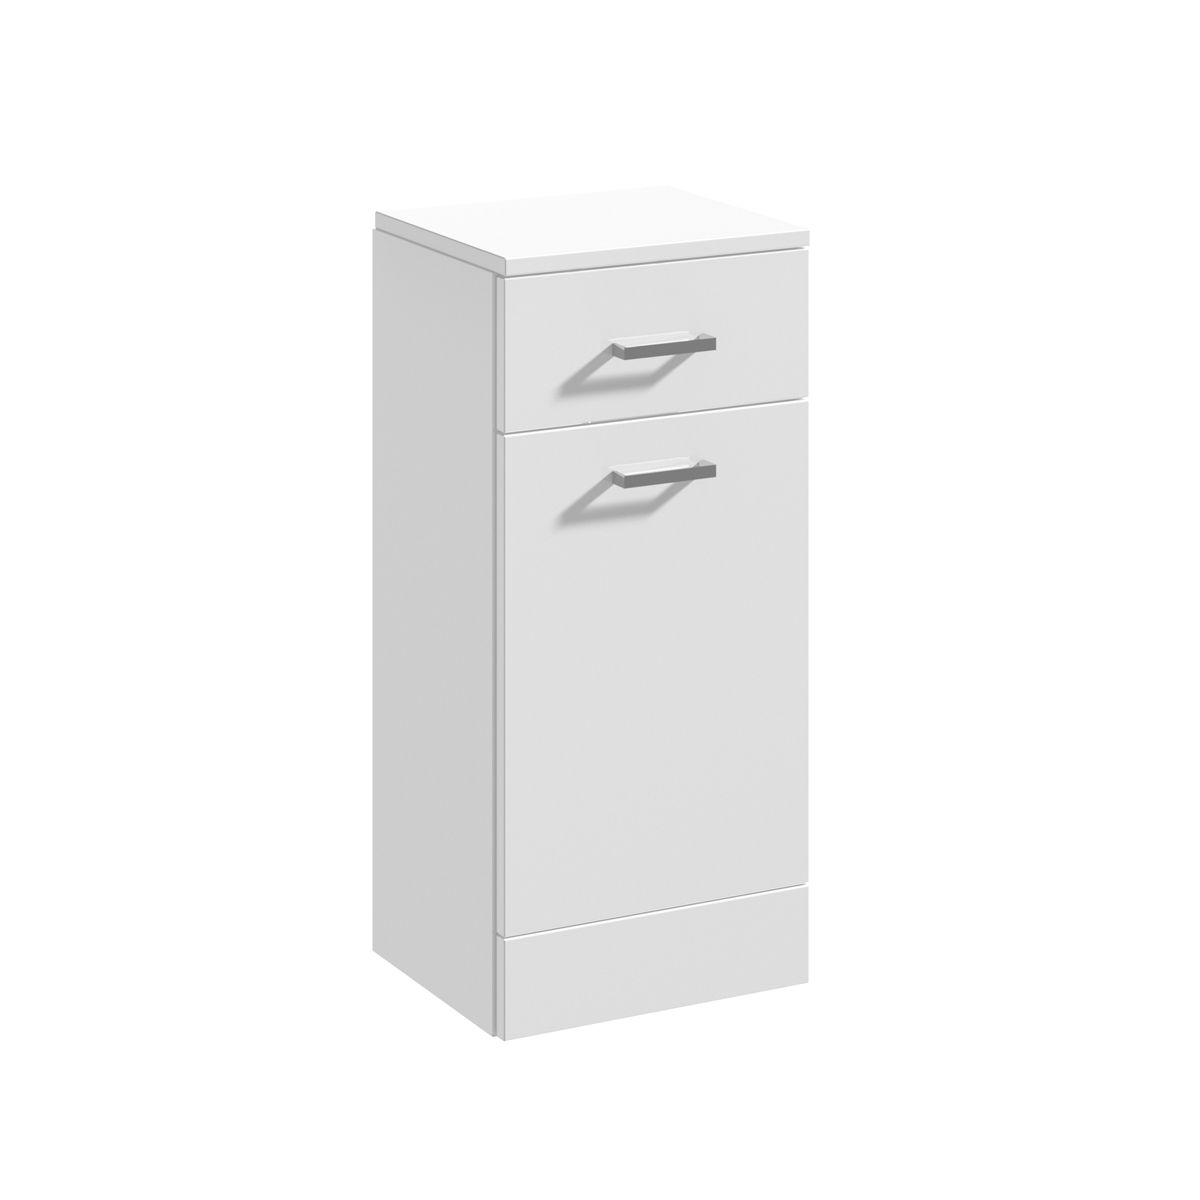 Nuie High Gloss White Laundry Basket 350 x 300mm